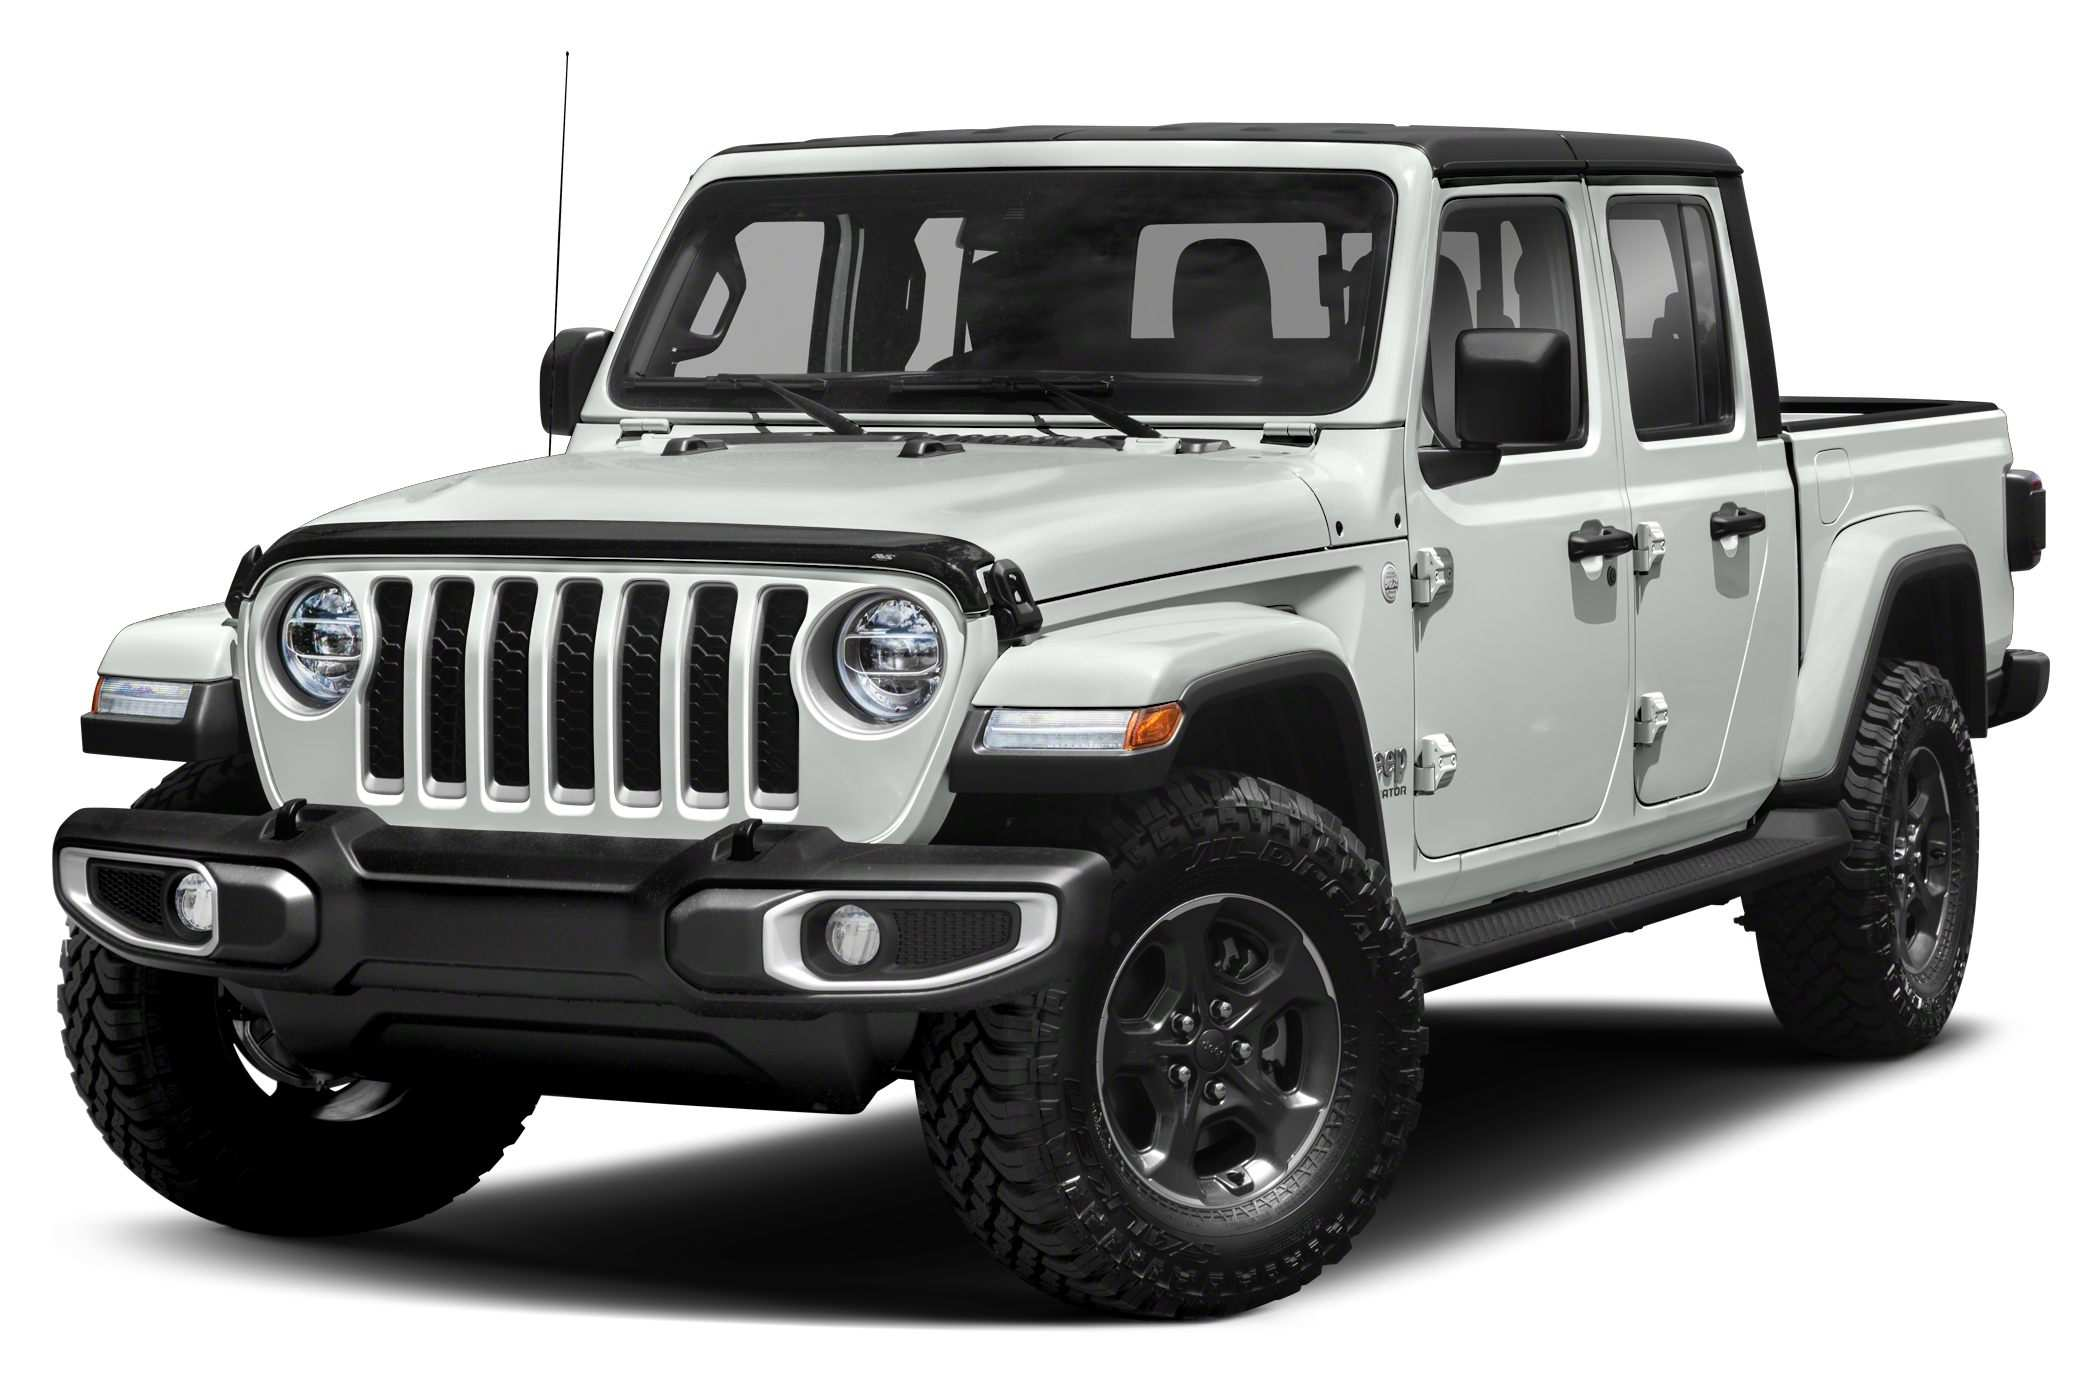 53 All New Jeep Islander 2020 Price for Jeep Islander 2020